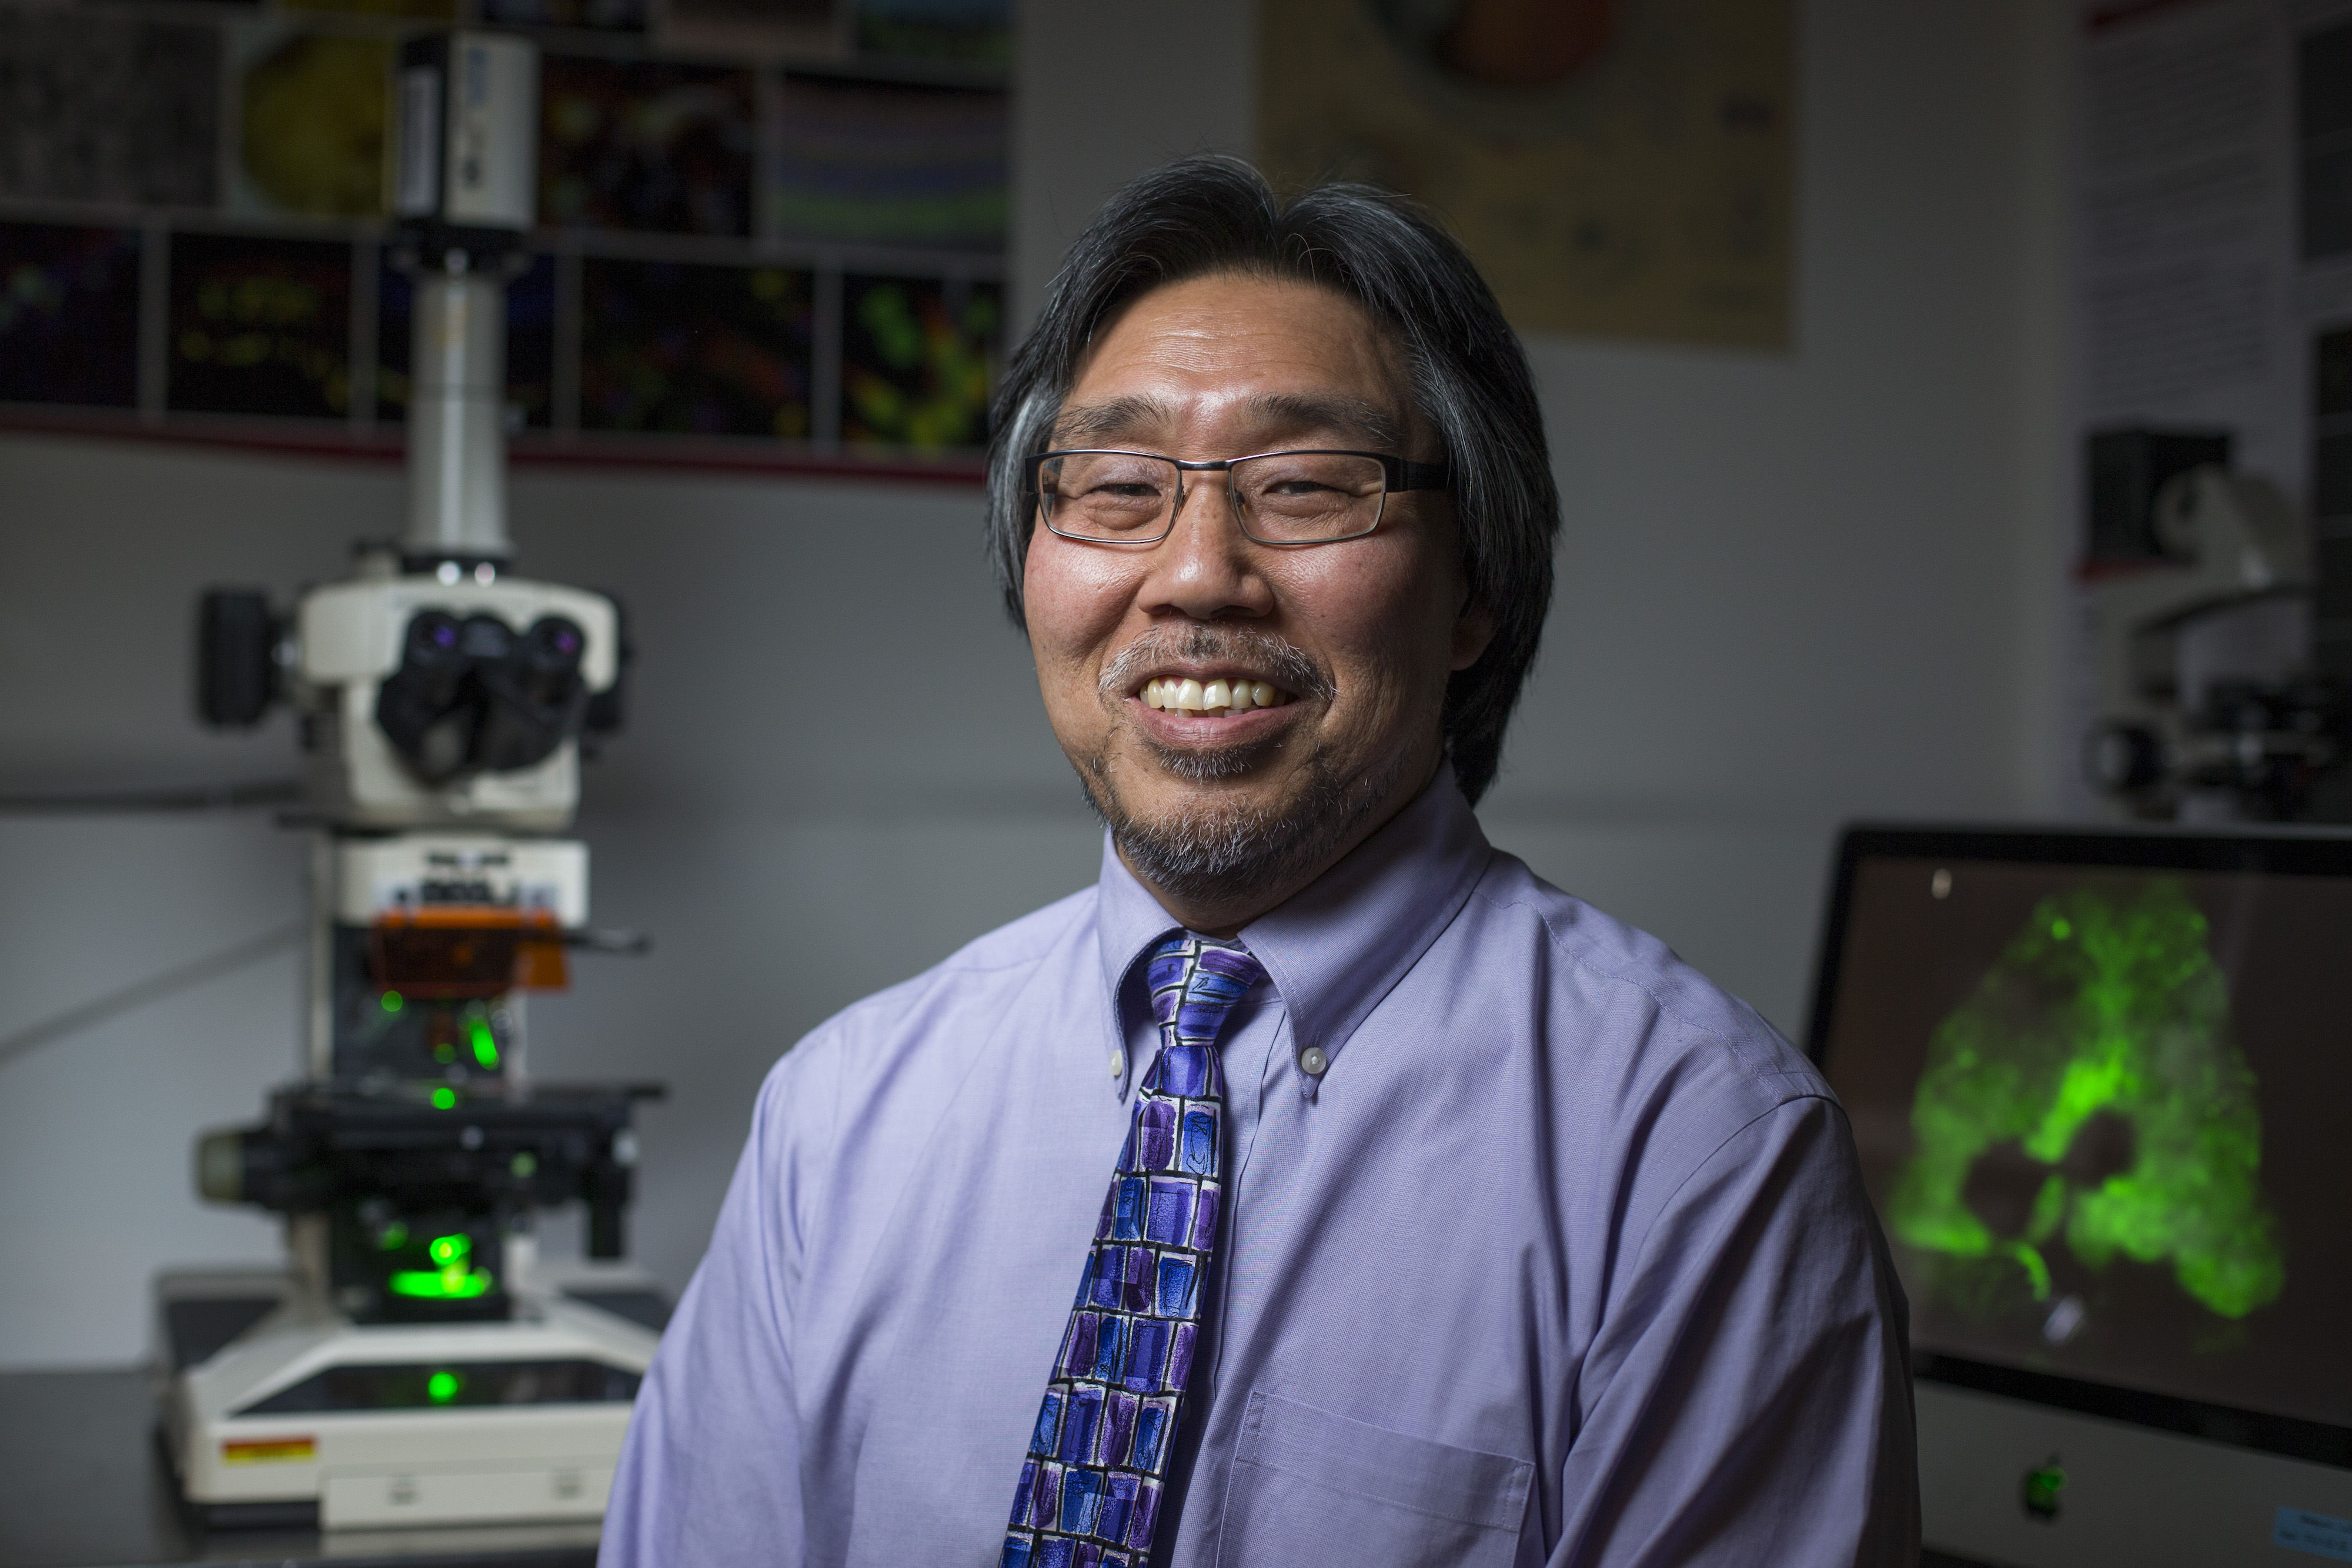 Don Sakaguchi with a microscope and computer imaging behind him.